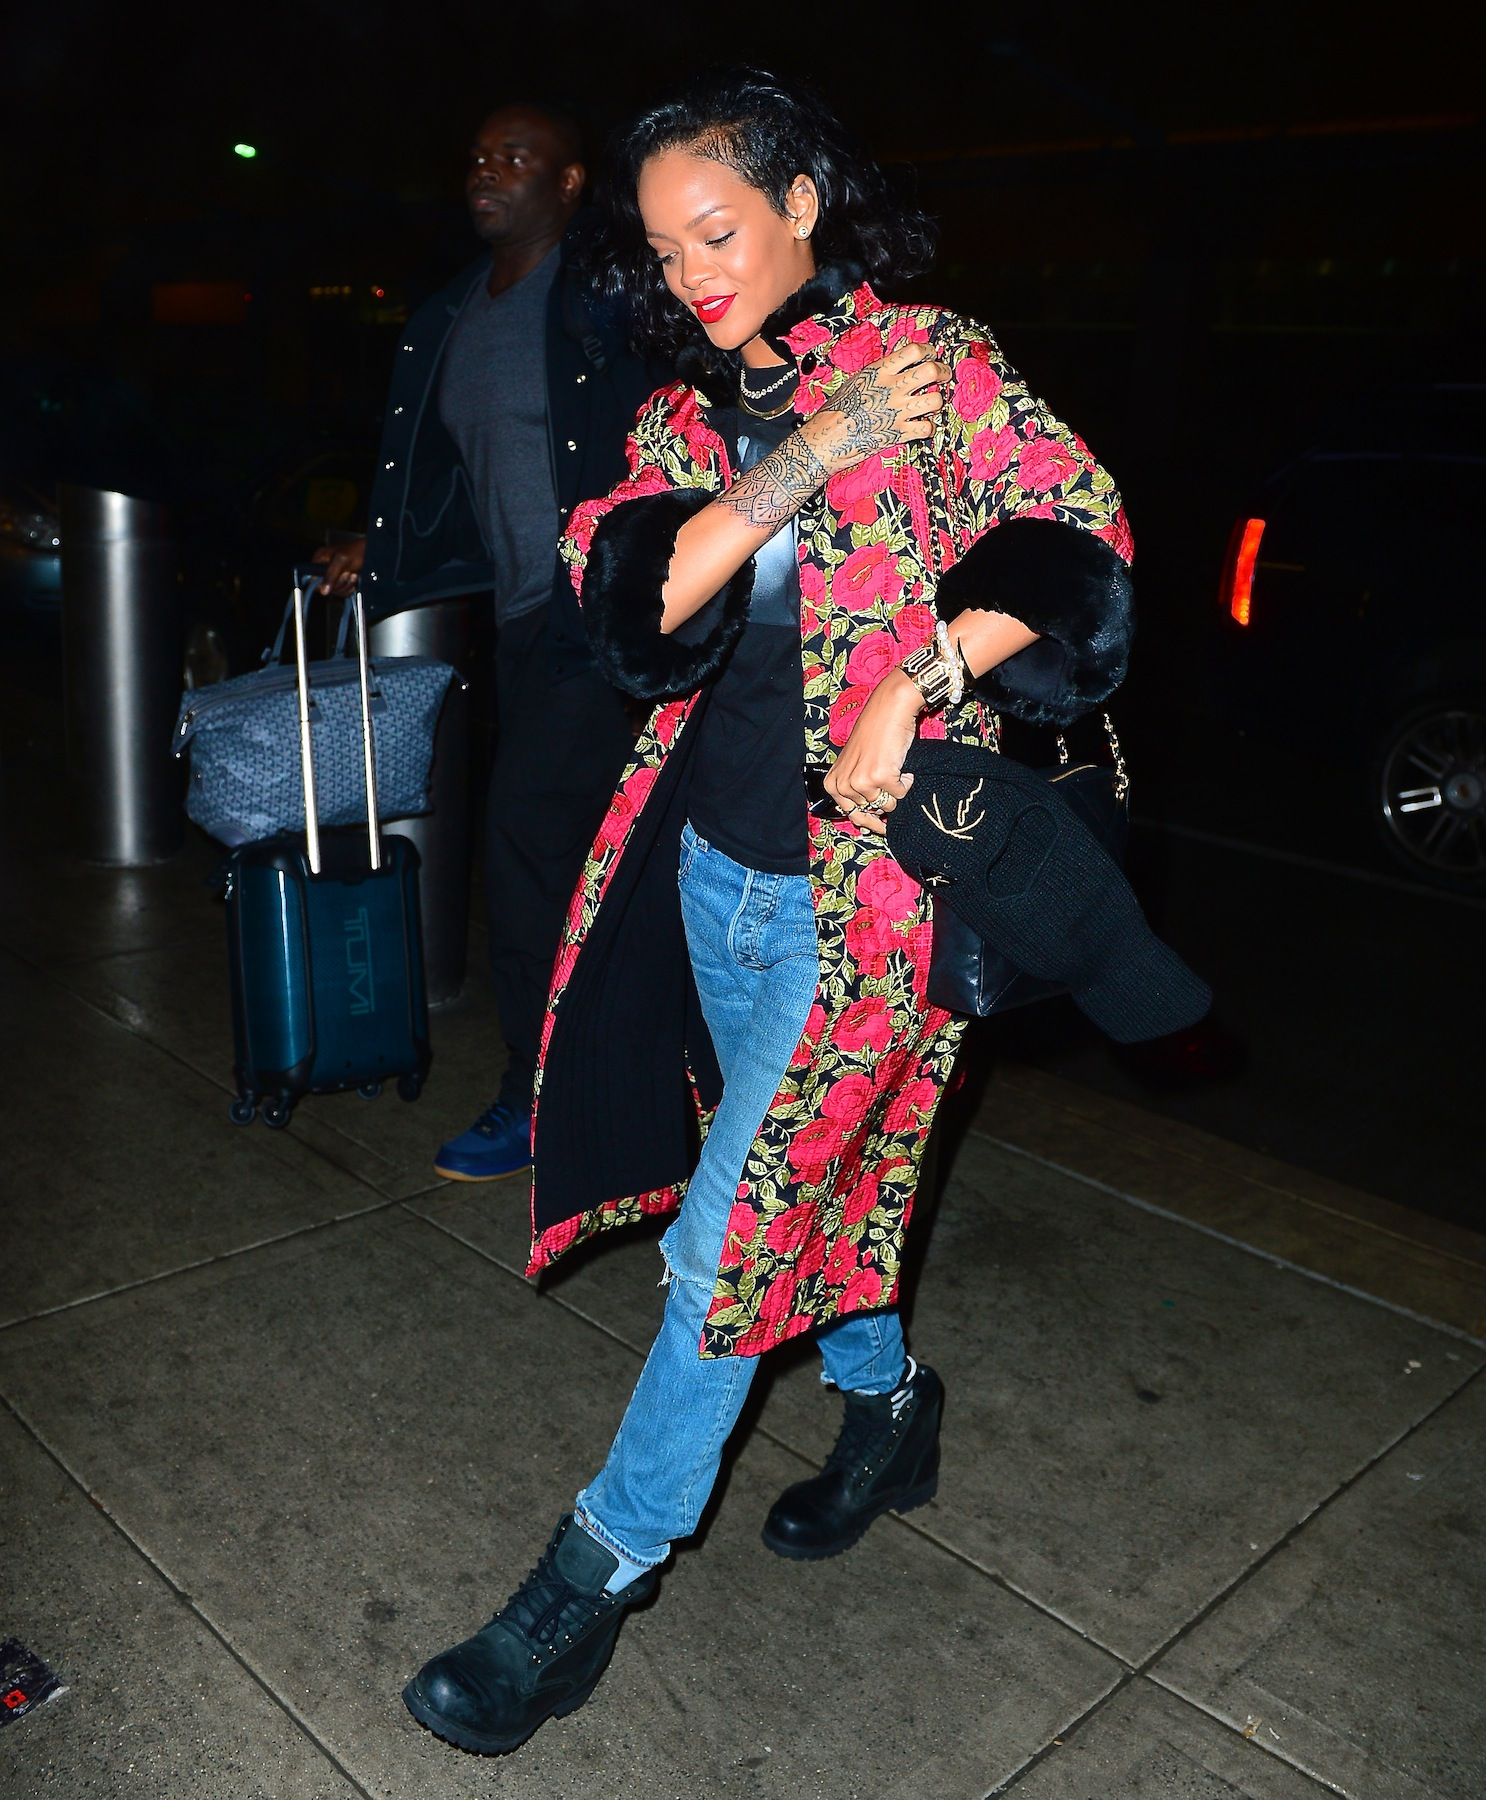 Rihanna wears a red floral overcoat as she departs for Brazil with new tattoos